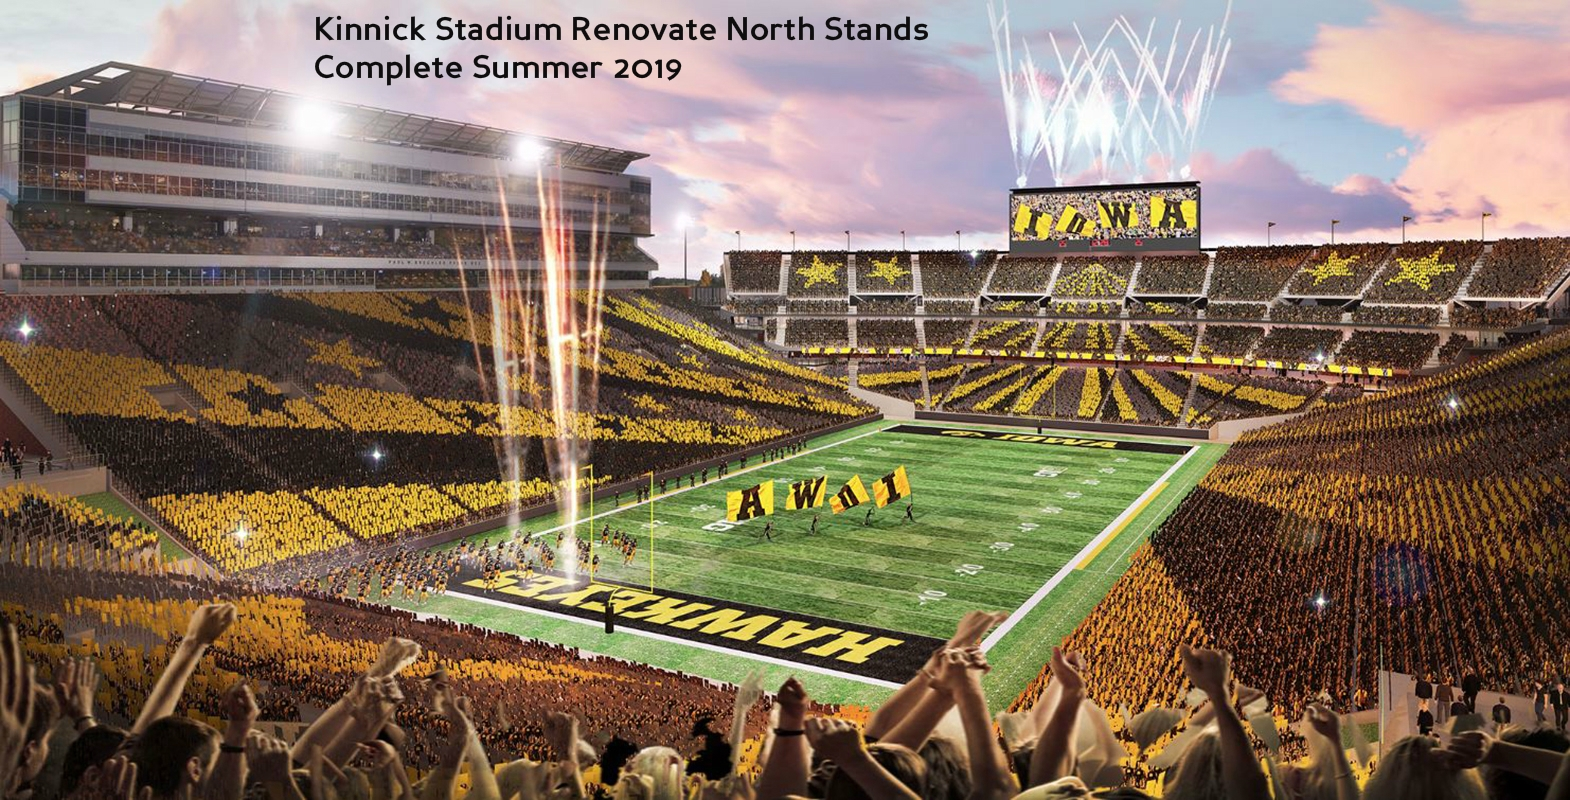 Kinnick Stadium Renovate North Stands